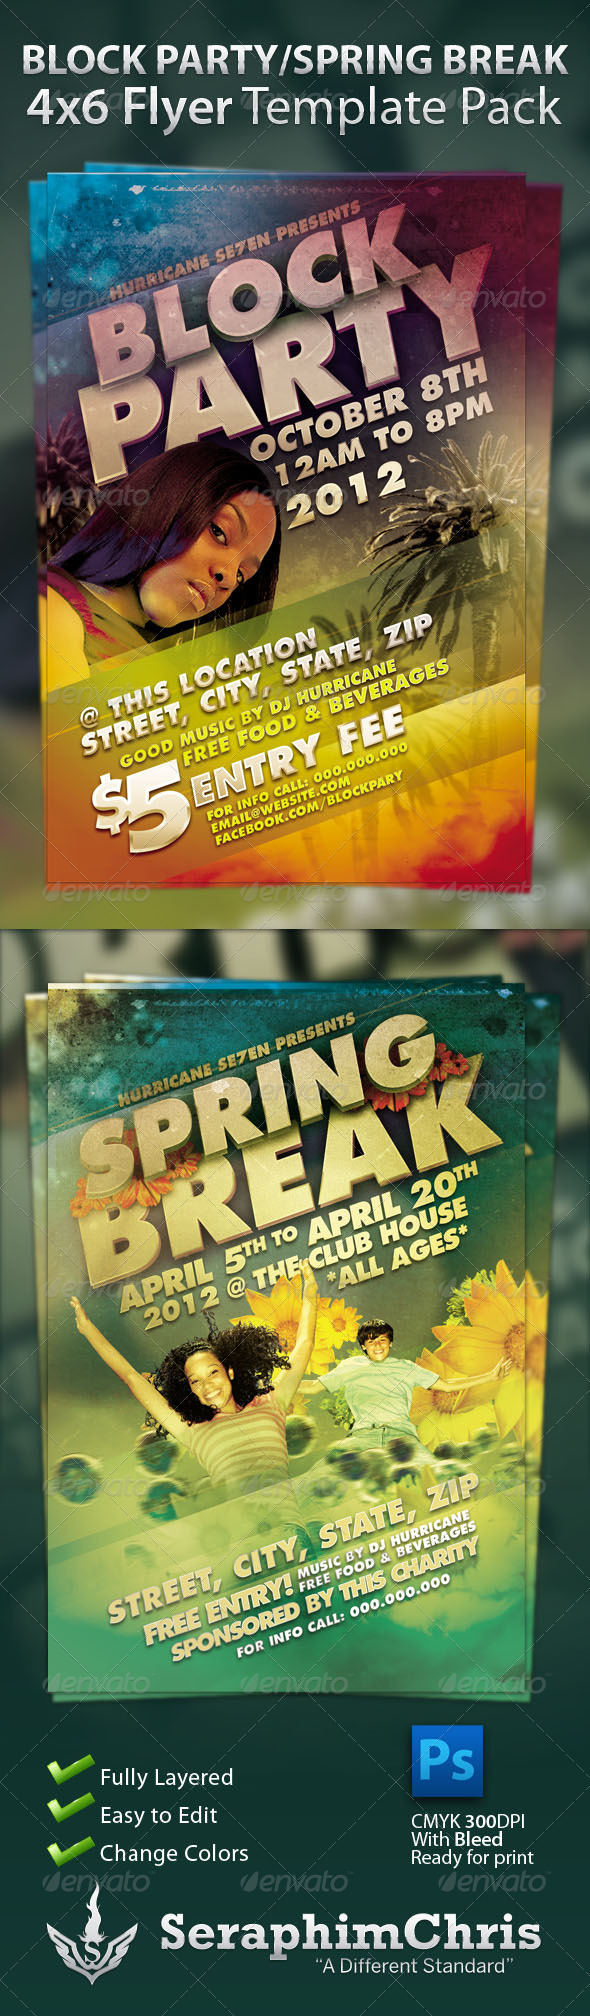 block party flyer template free